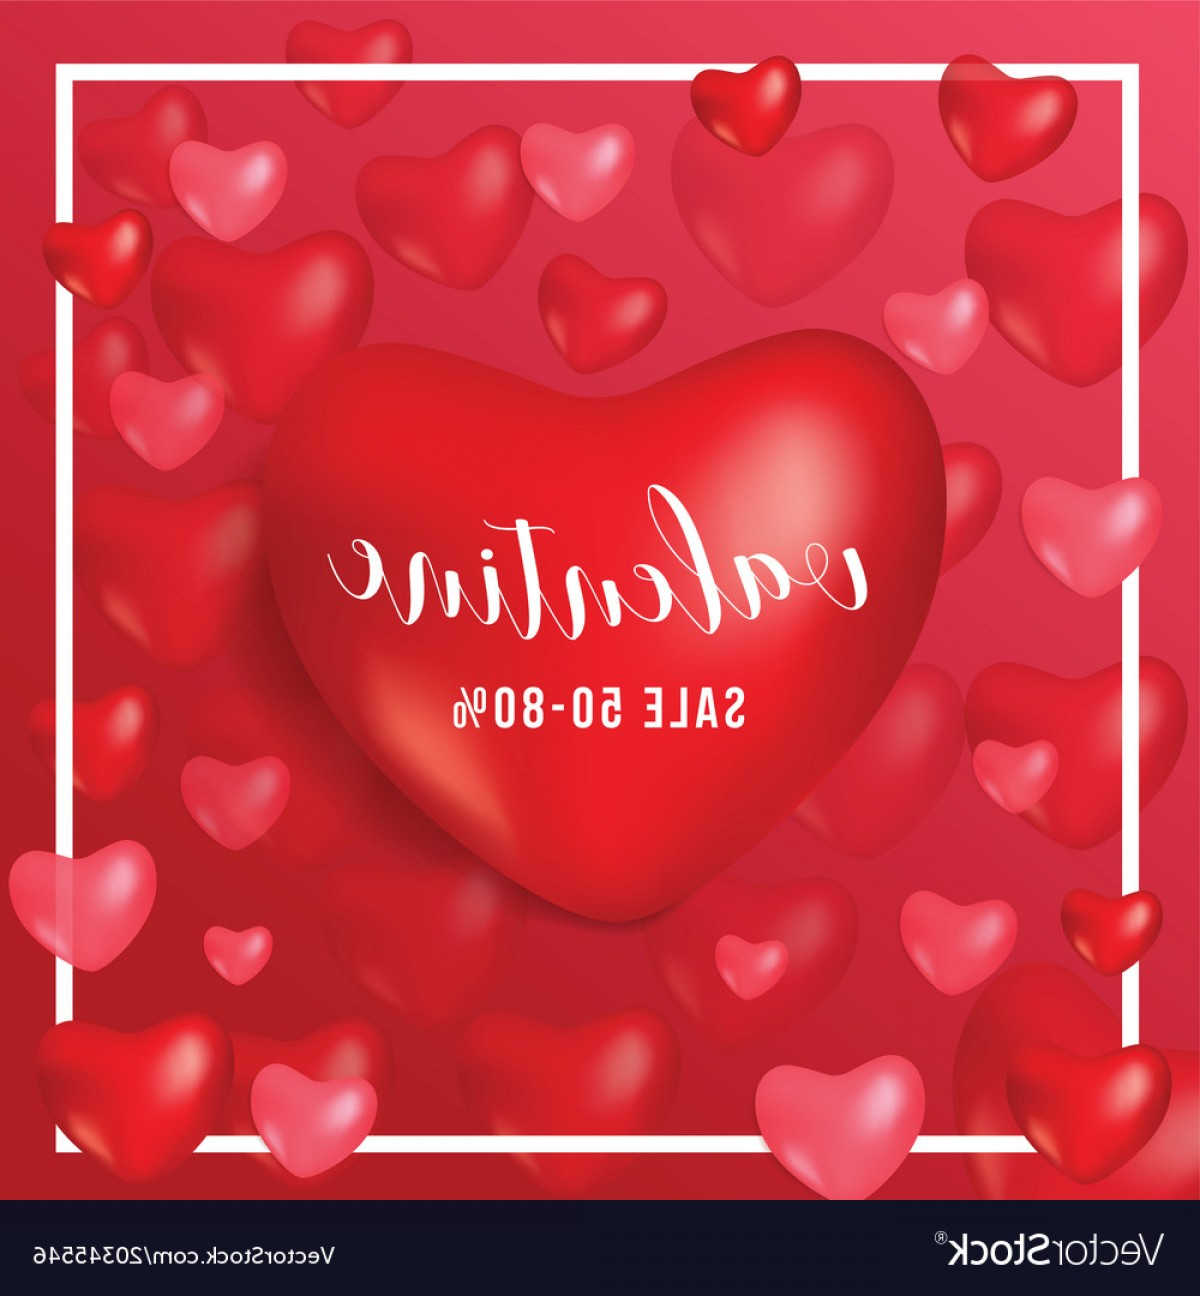 RedVector Coupon: Happy Valentine Day Gift Voucher Coupon Heart Red Vector